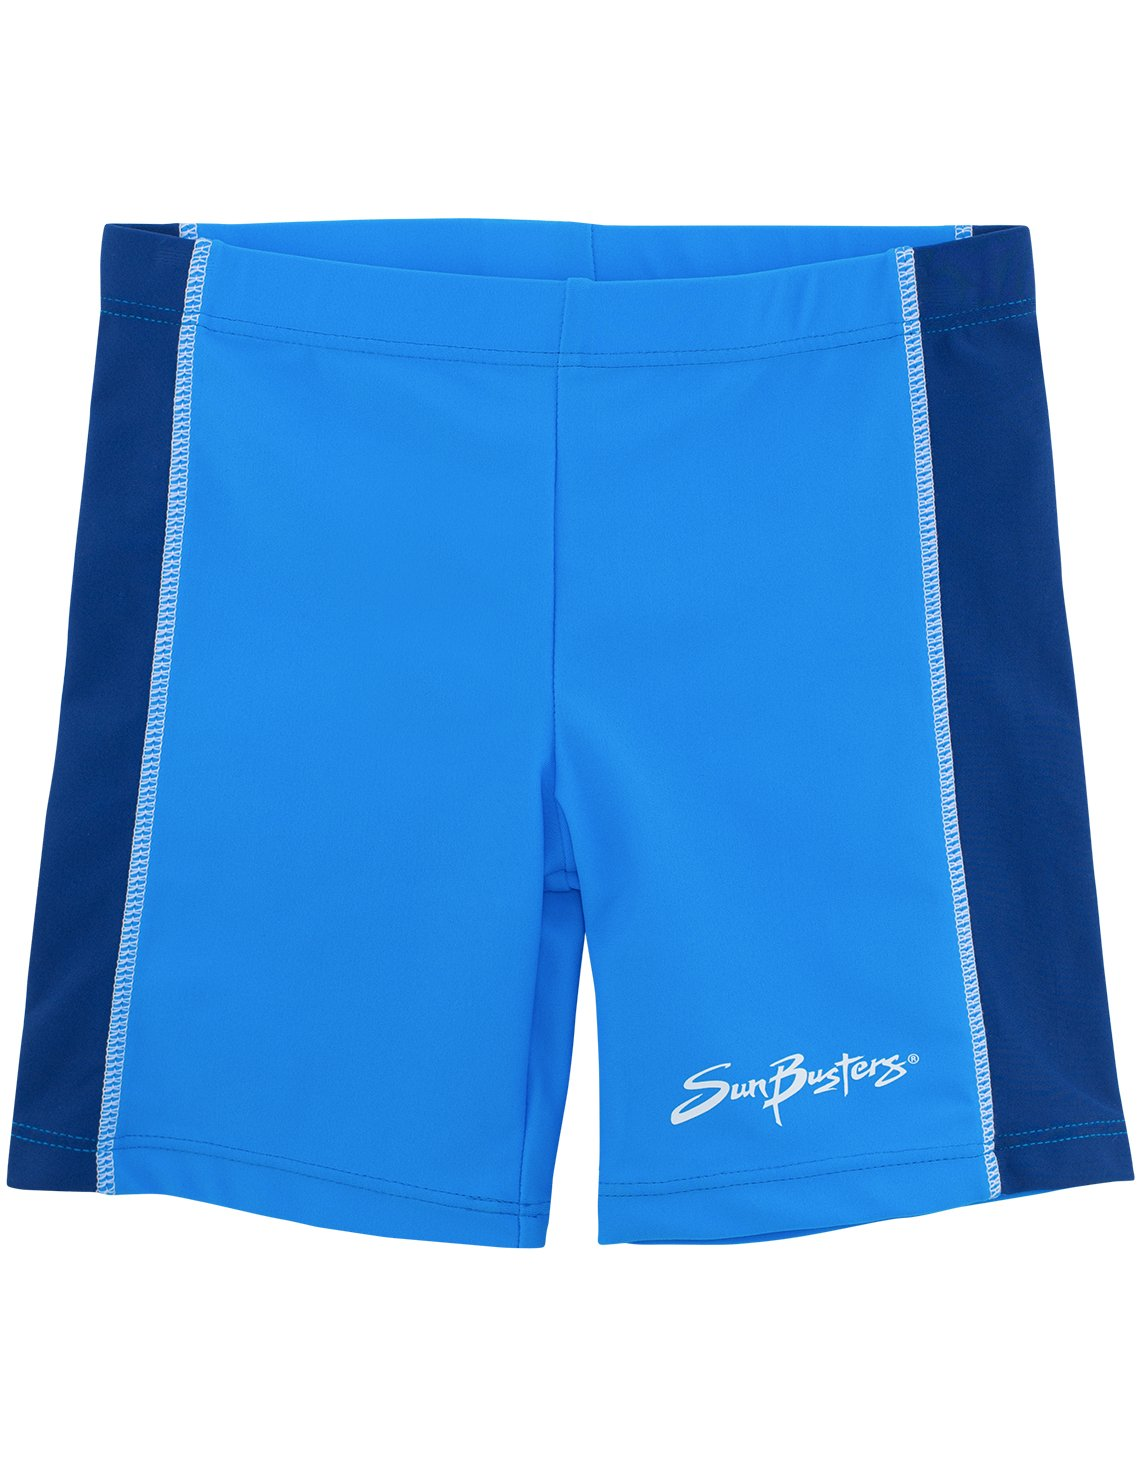 SunBusters Boys Swim Short(UPF 50+), Splash, 2/3 yrs by SunBusters Sunwear (Image #1)